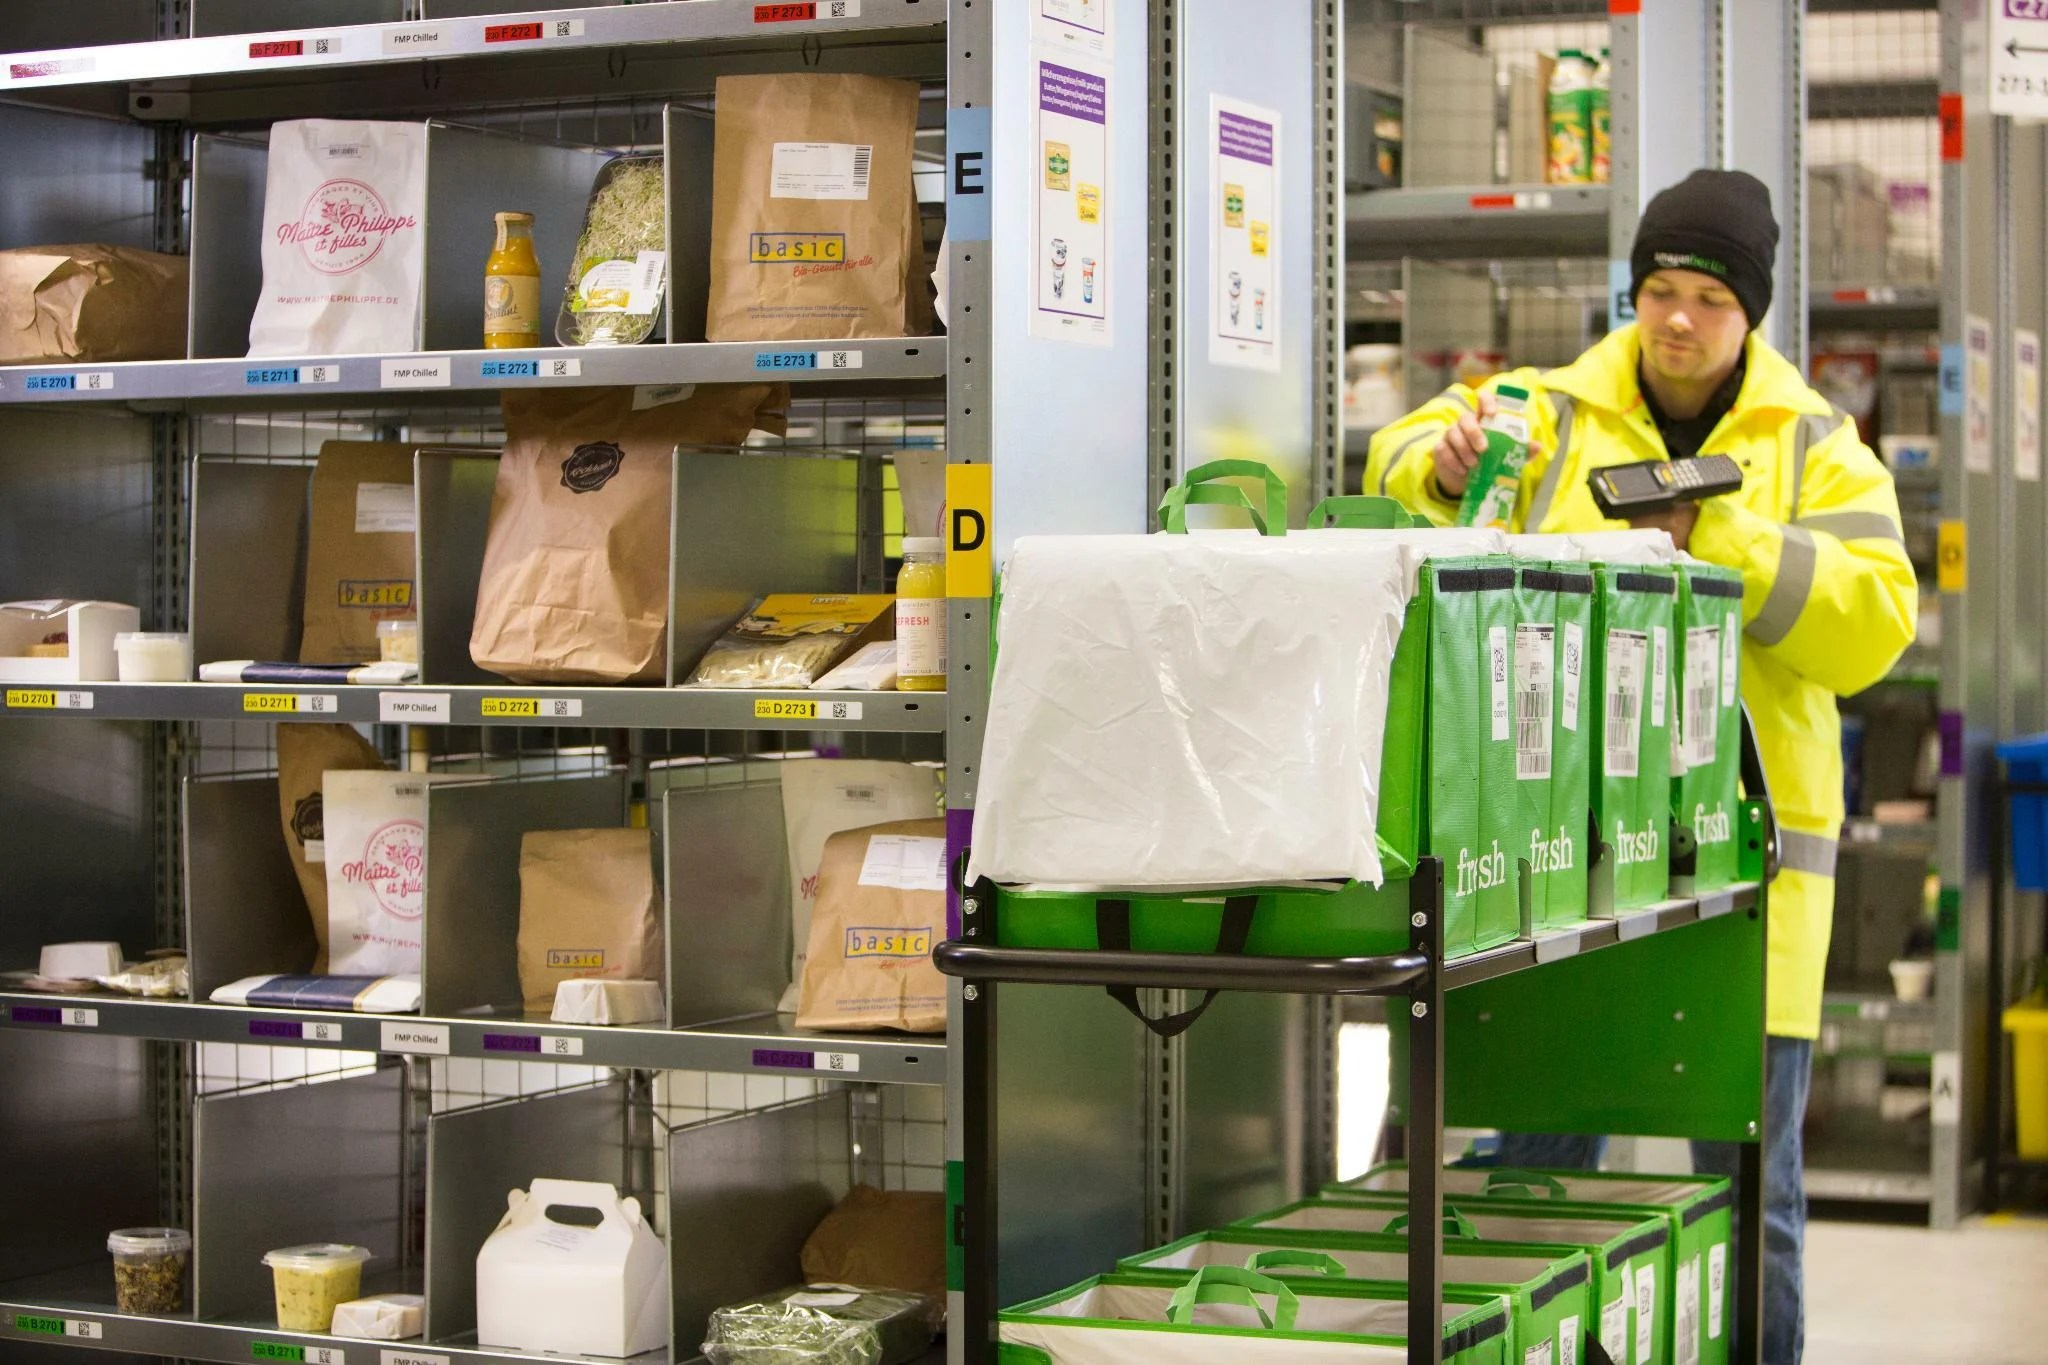 Spiegel Amazon Fresh Amazon Fresh Amazon Startet Online Supermarkt In Berlin